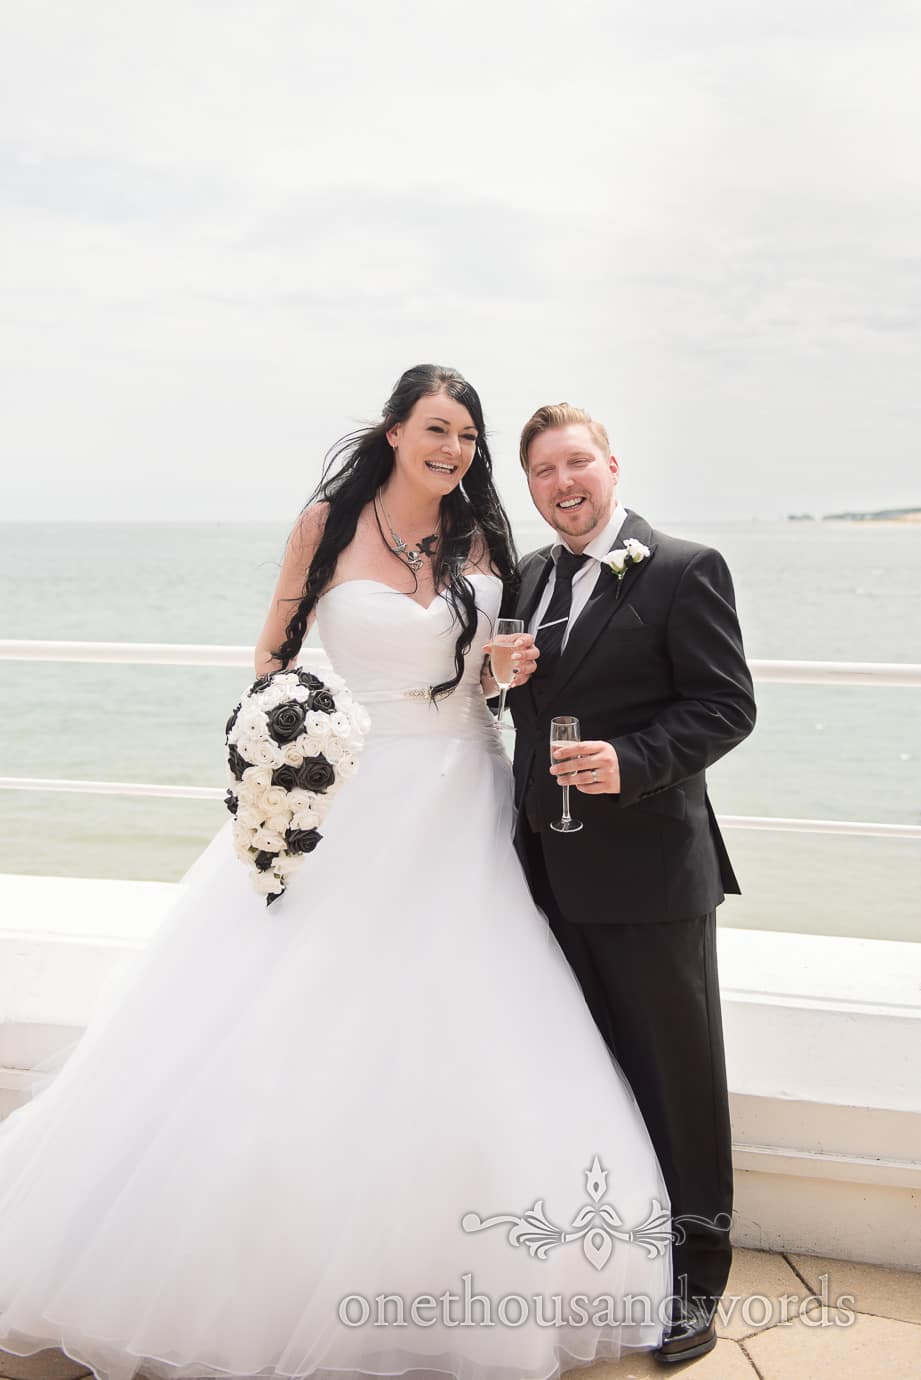 Rock and Roll wedding bride and groom in black and white laughing by the sea